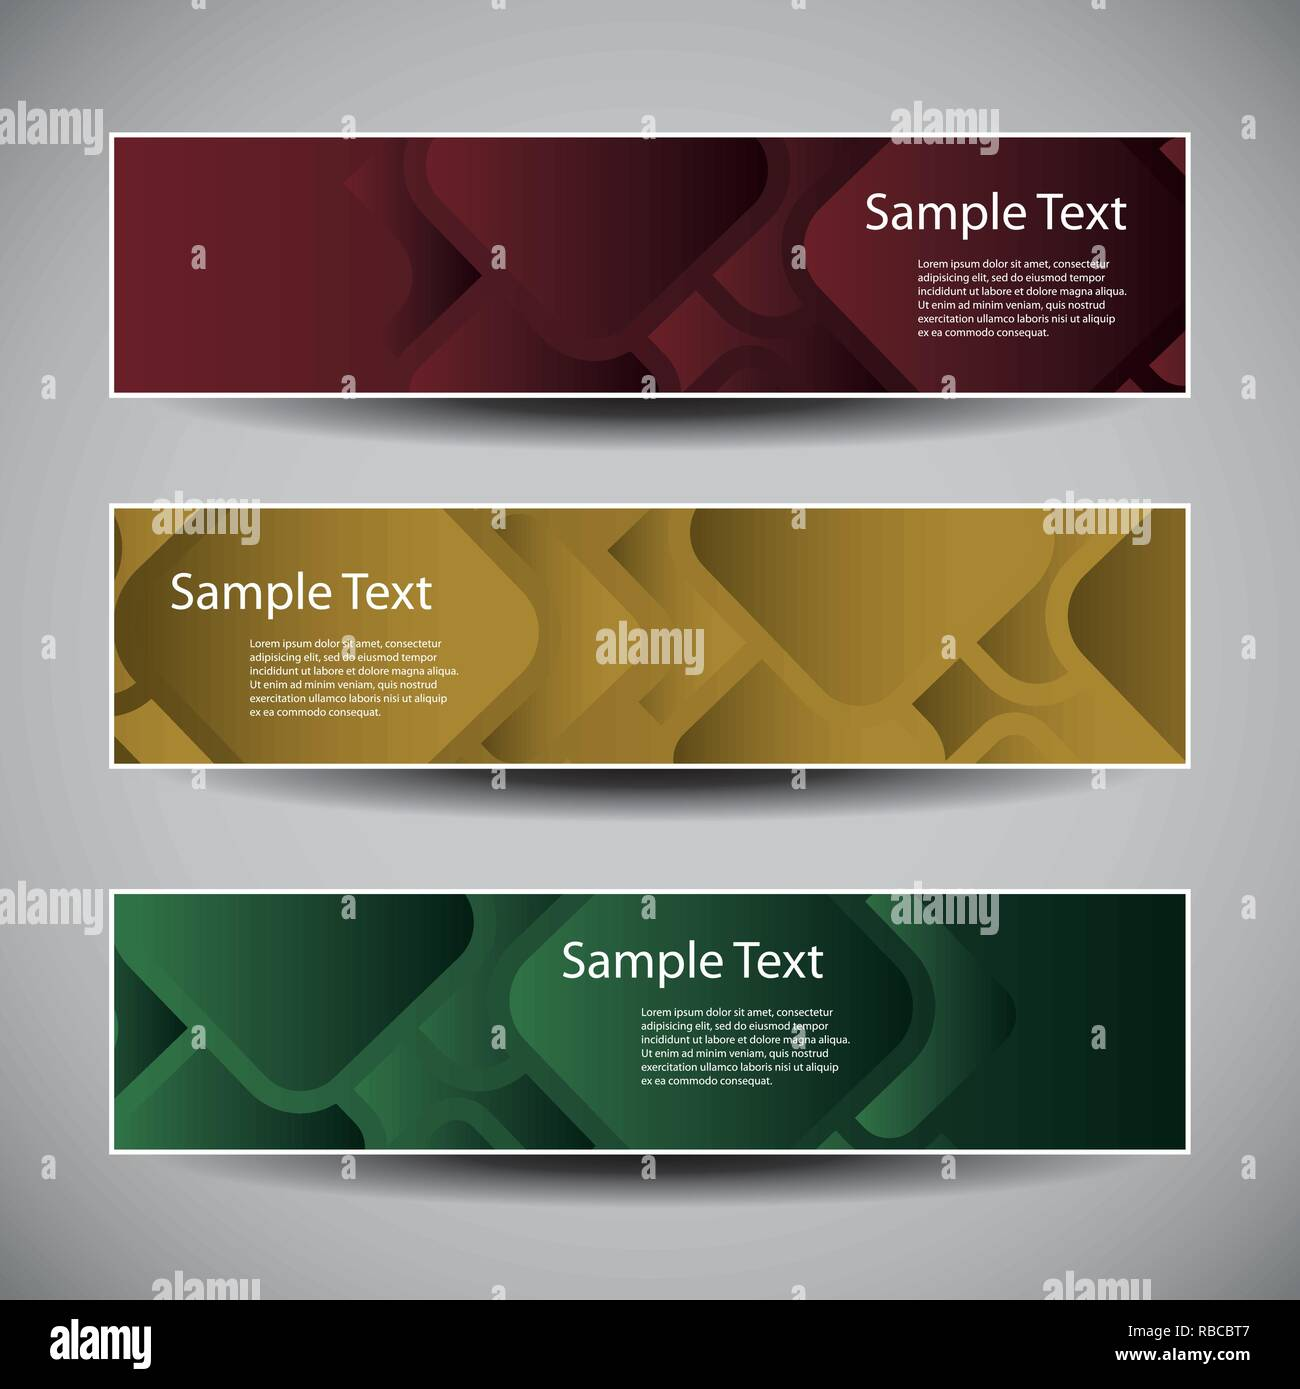 Set of Three Colorful Modern Styled Creative Headers or Banner Designs with Abstract Pattern - Illustration in Freely Scalable and Editable Vector - Stock Vector